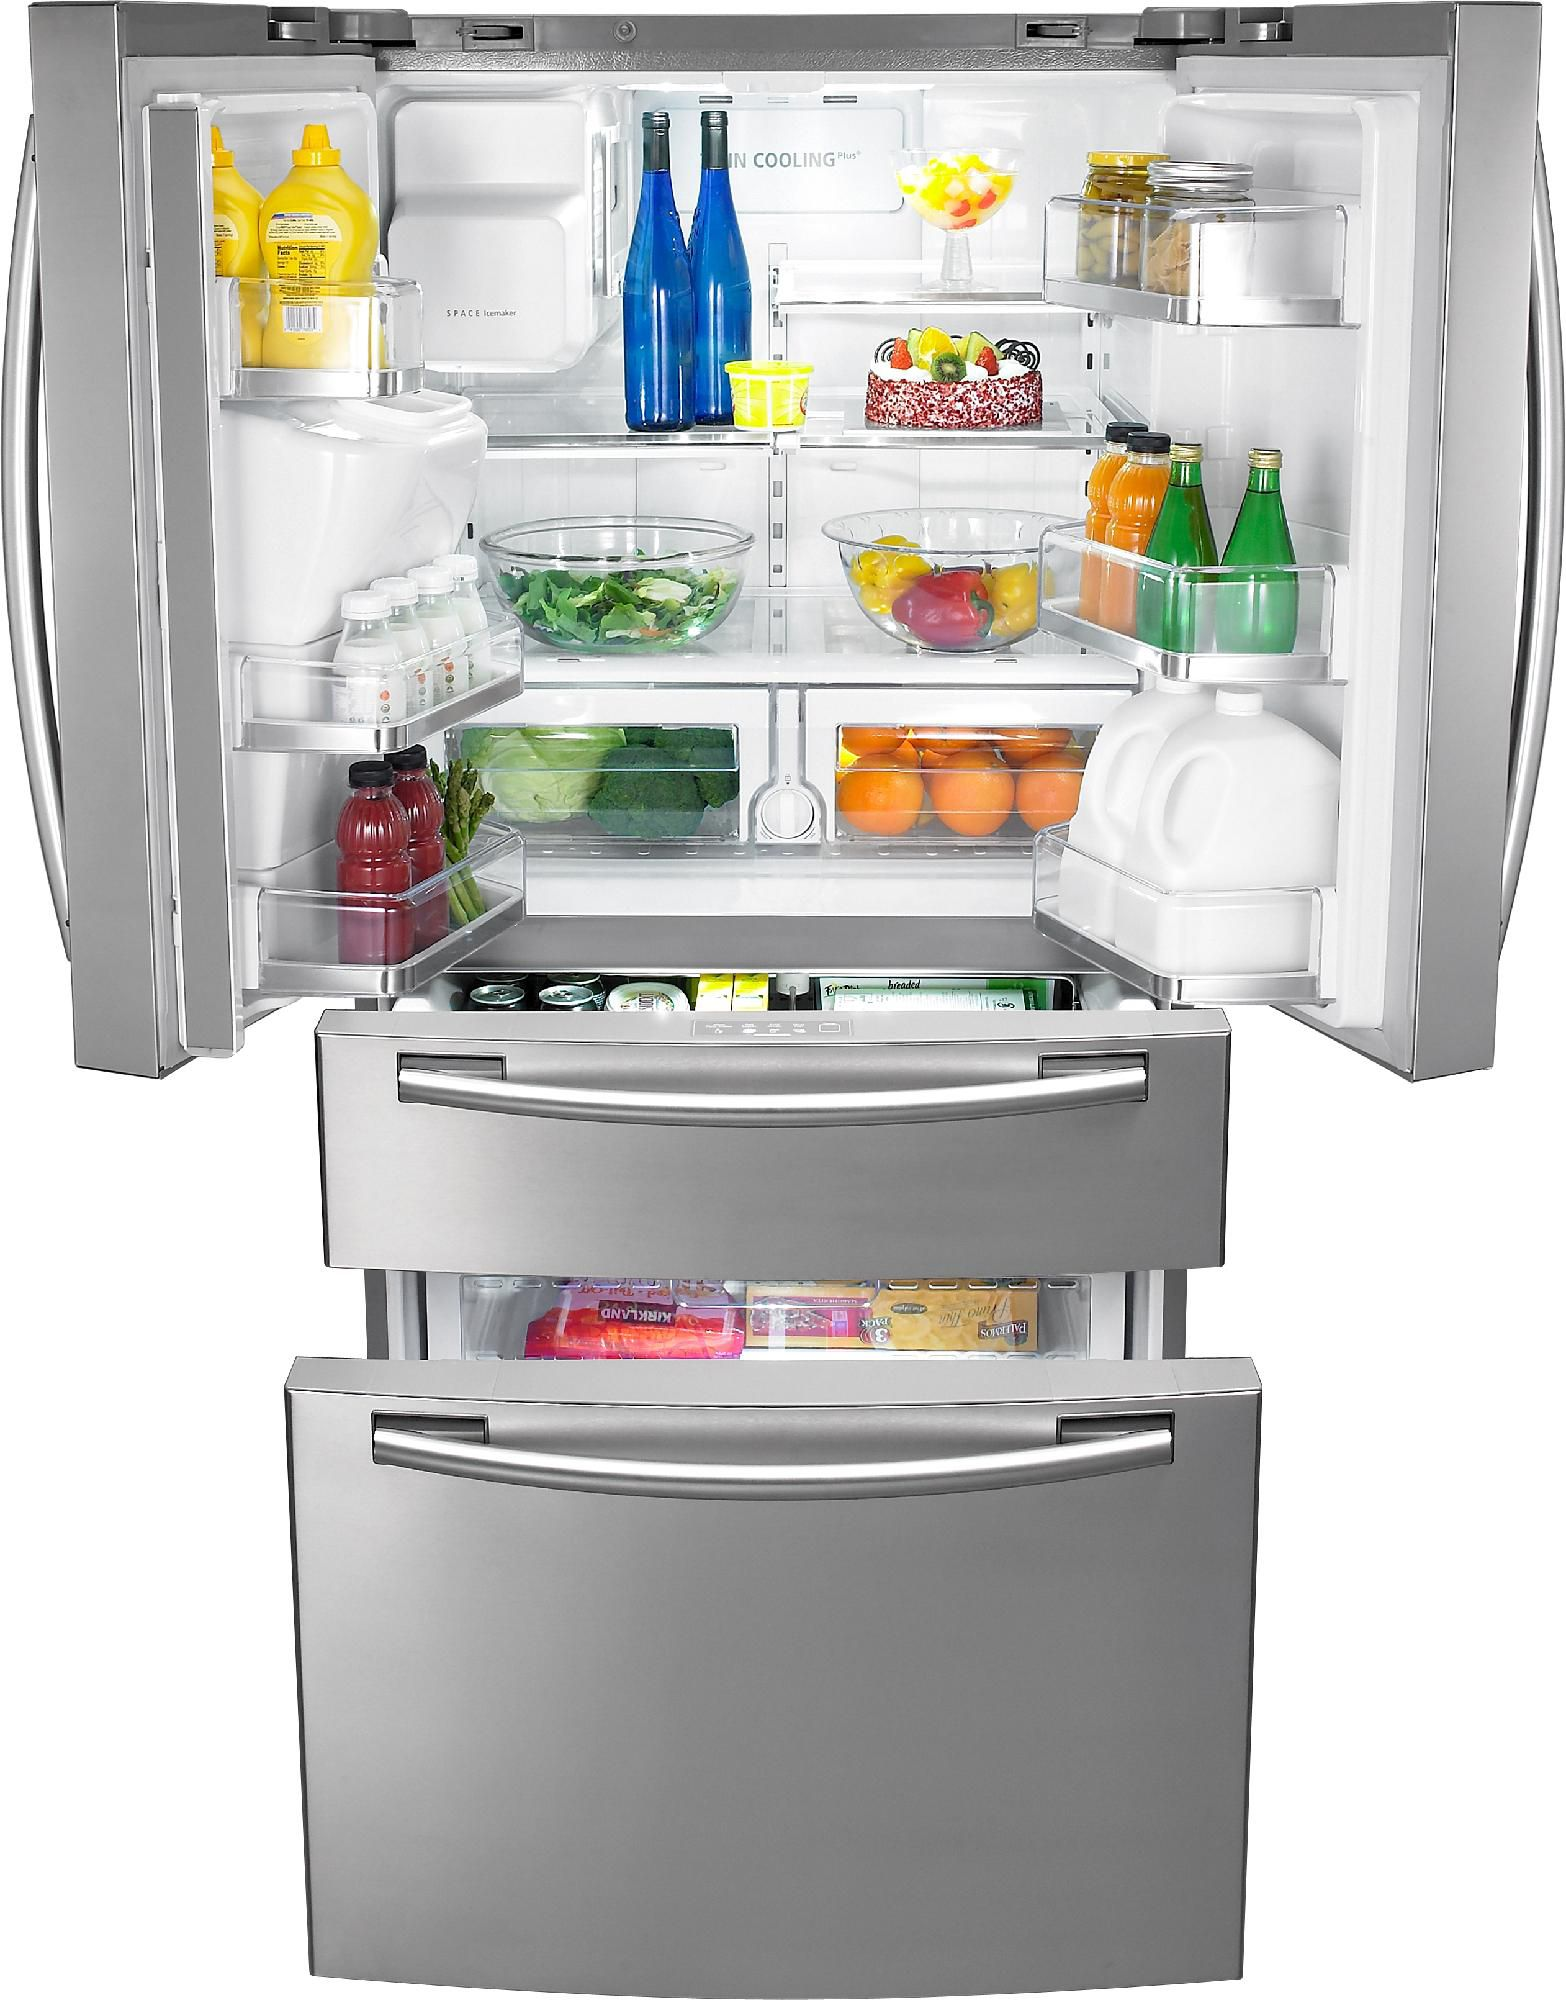 Samsung 26.0 cu. ft. Bottom-Freezer Refrigerator - Stainless Steel